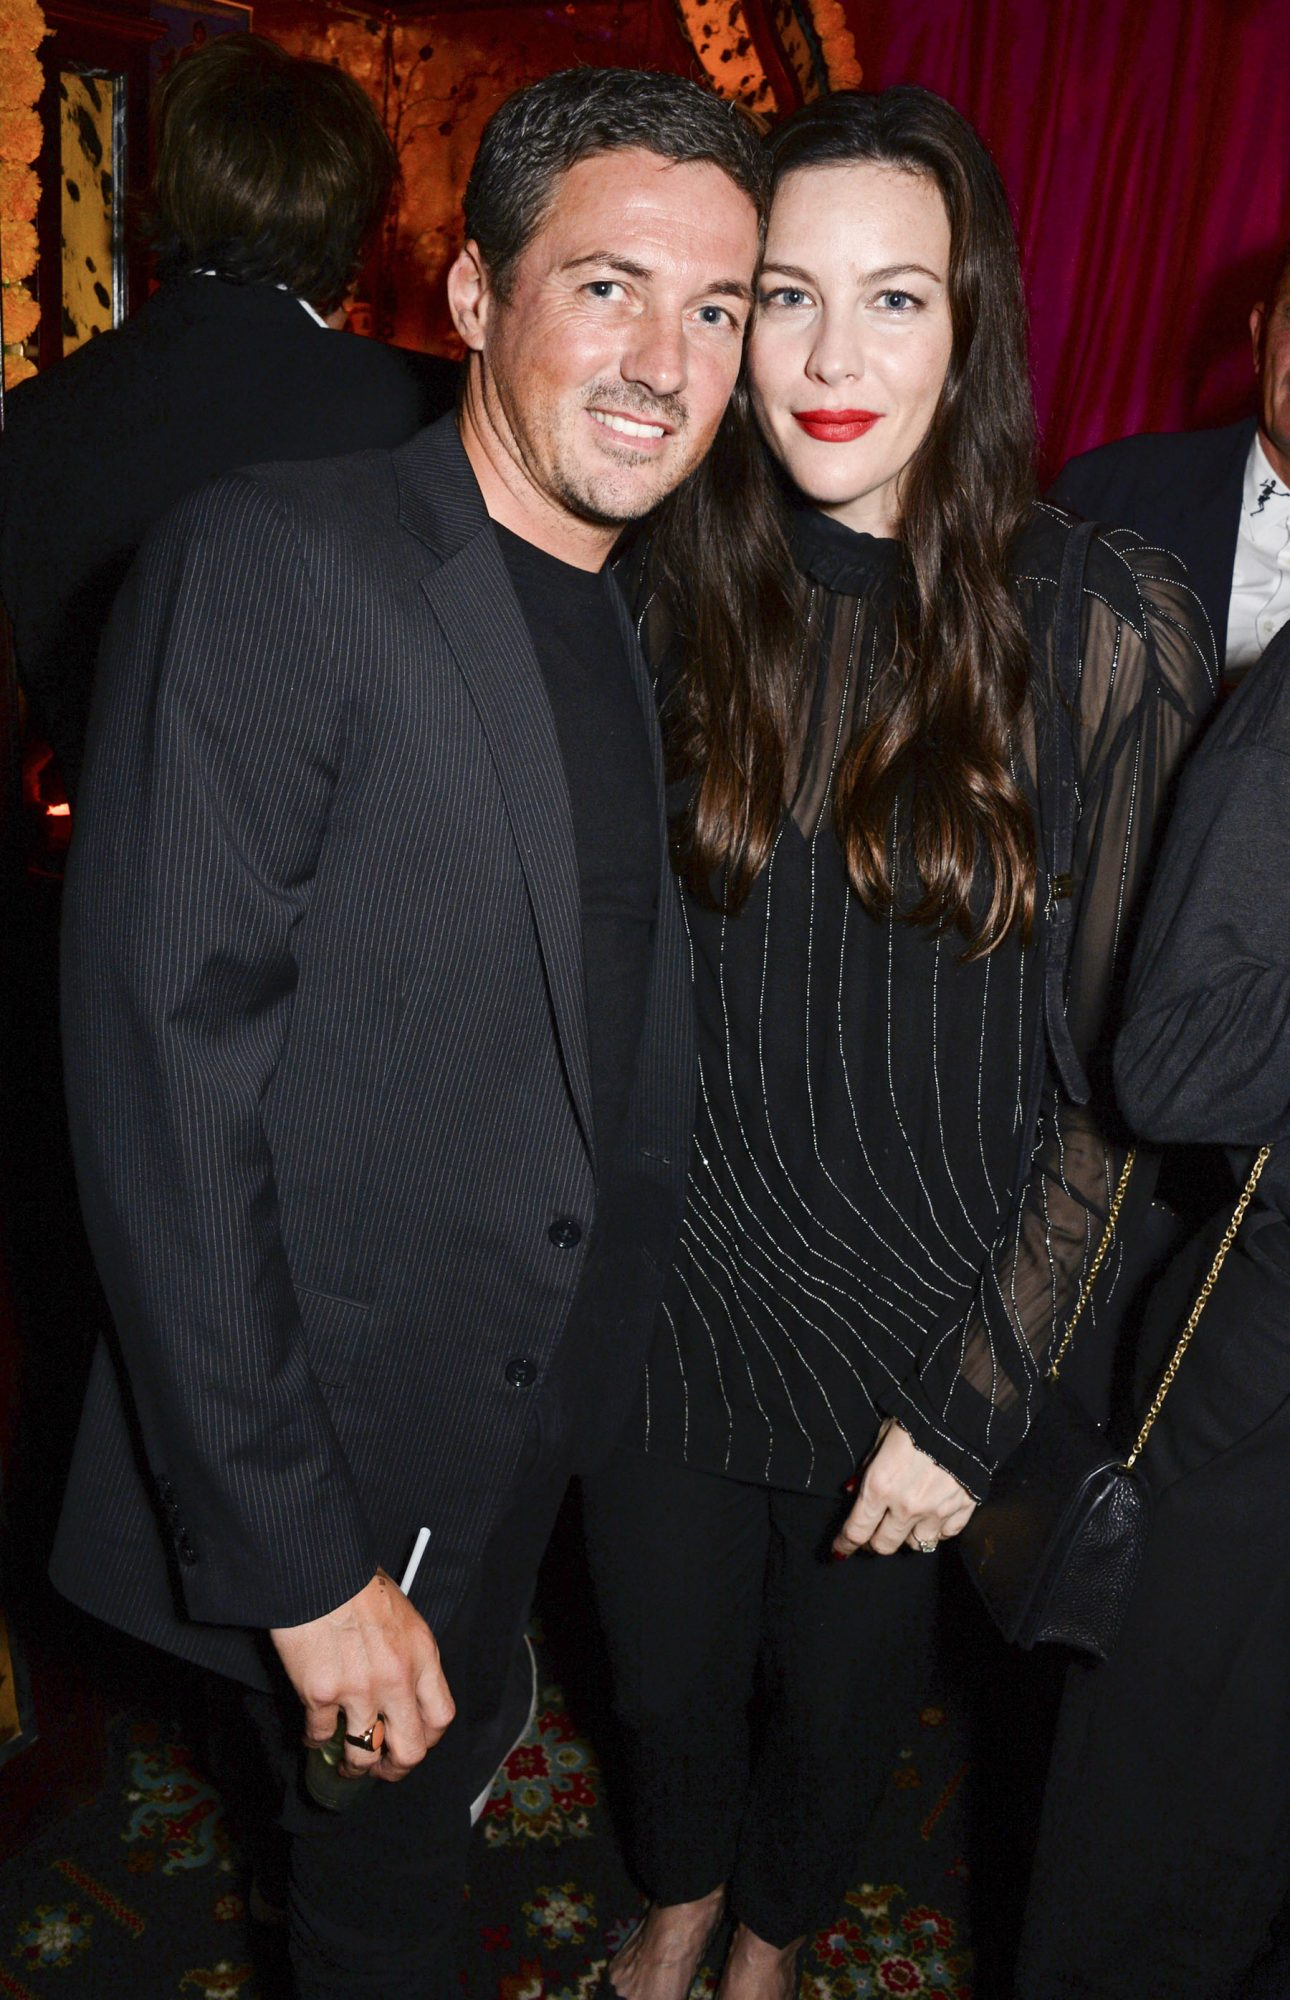 LONDON, ENGLAND - SEPTEMBER 17: Dave Gardner and Liv Tyler attends the LOVE Magazine 10th birthday party with Perrier-Jouet at Loulou's on September 17, 2018 in London, England. (Photo by David M. Benett/Dave Benett/Getty Images for LOVE Magazine/Conde Nast)